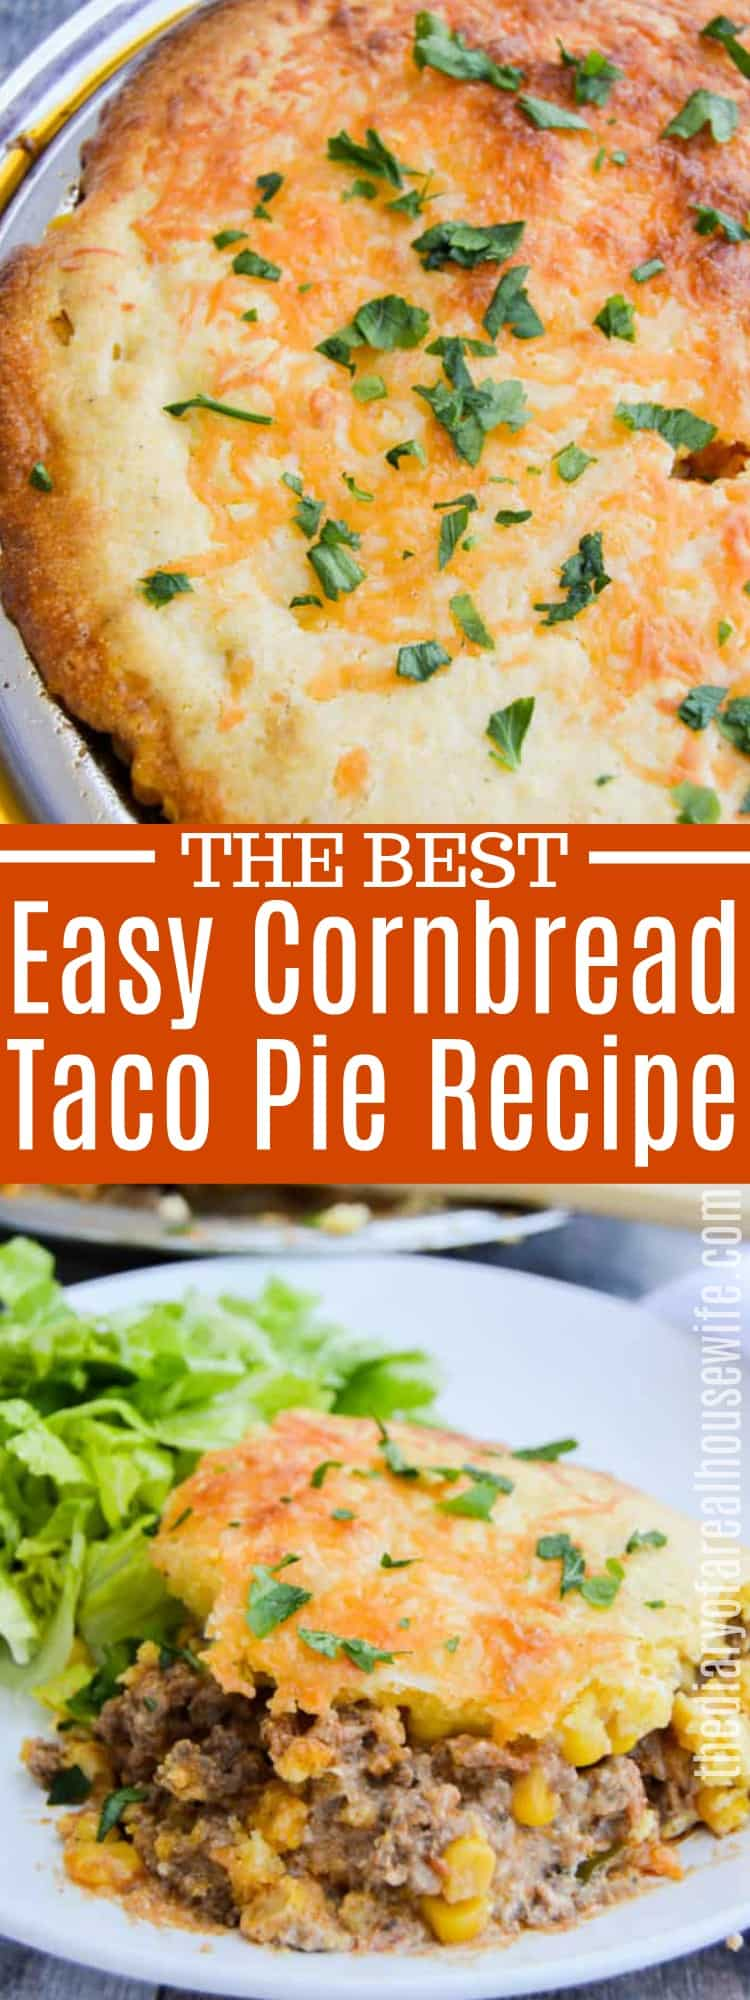 Easy Cornbread Taco Pie